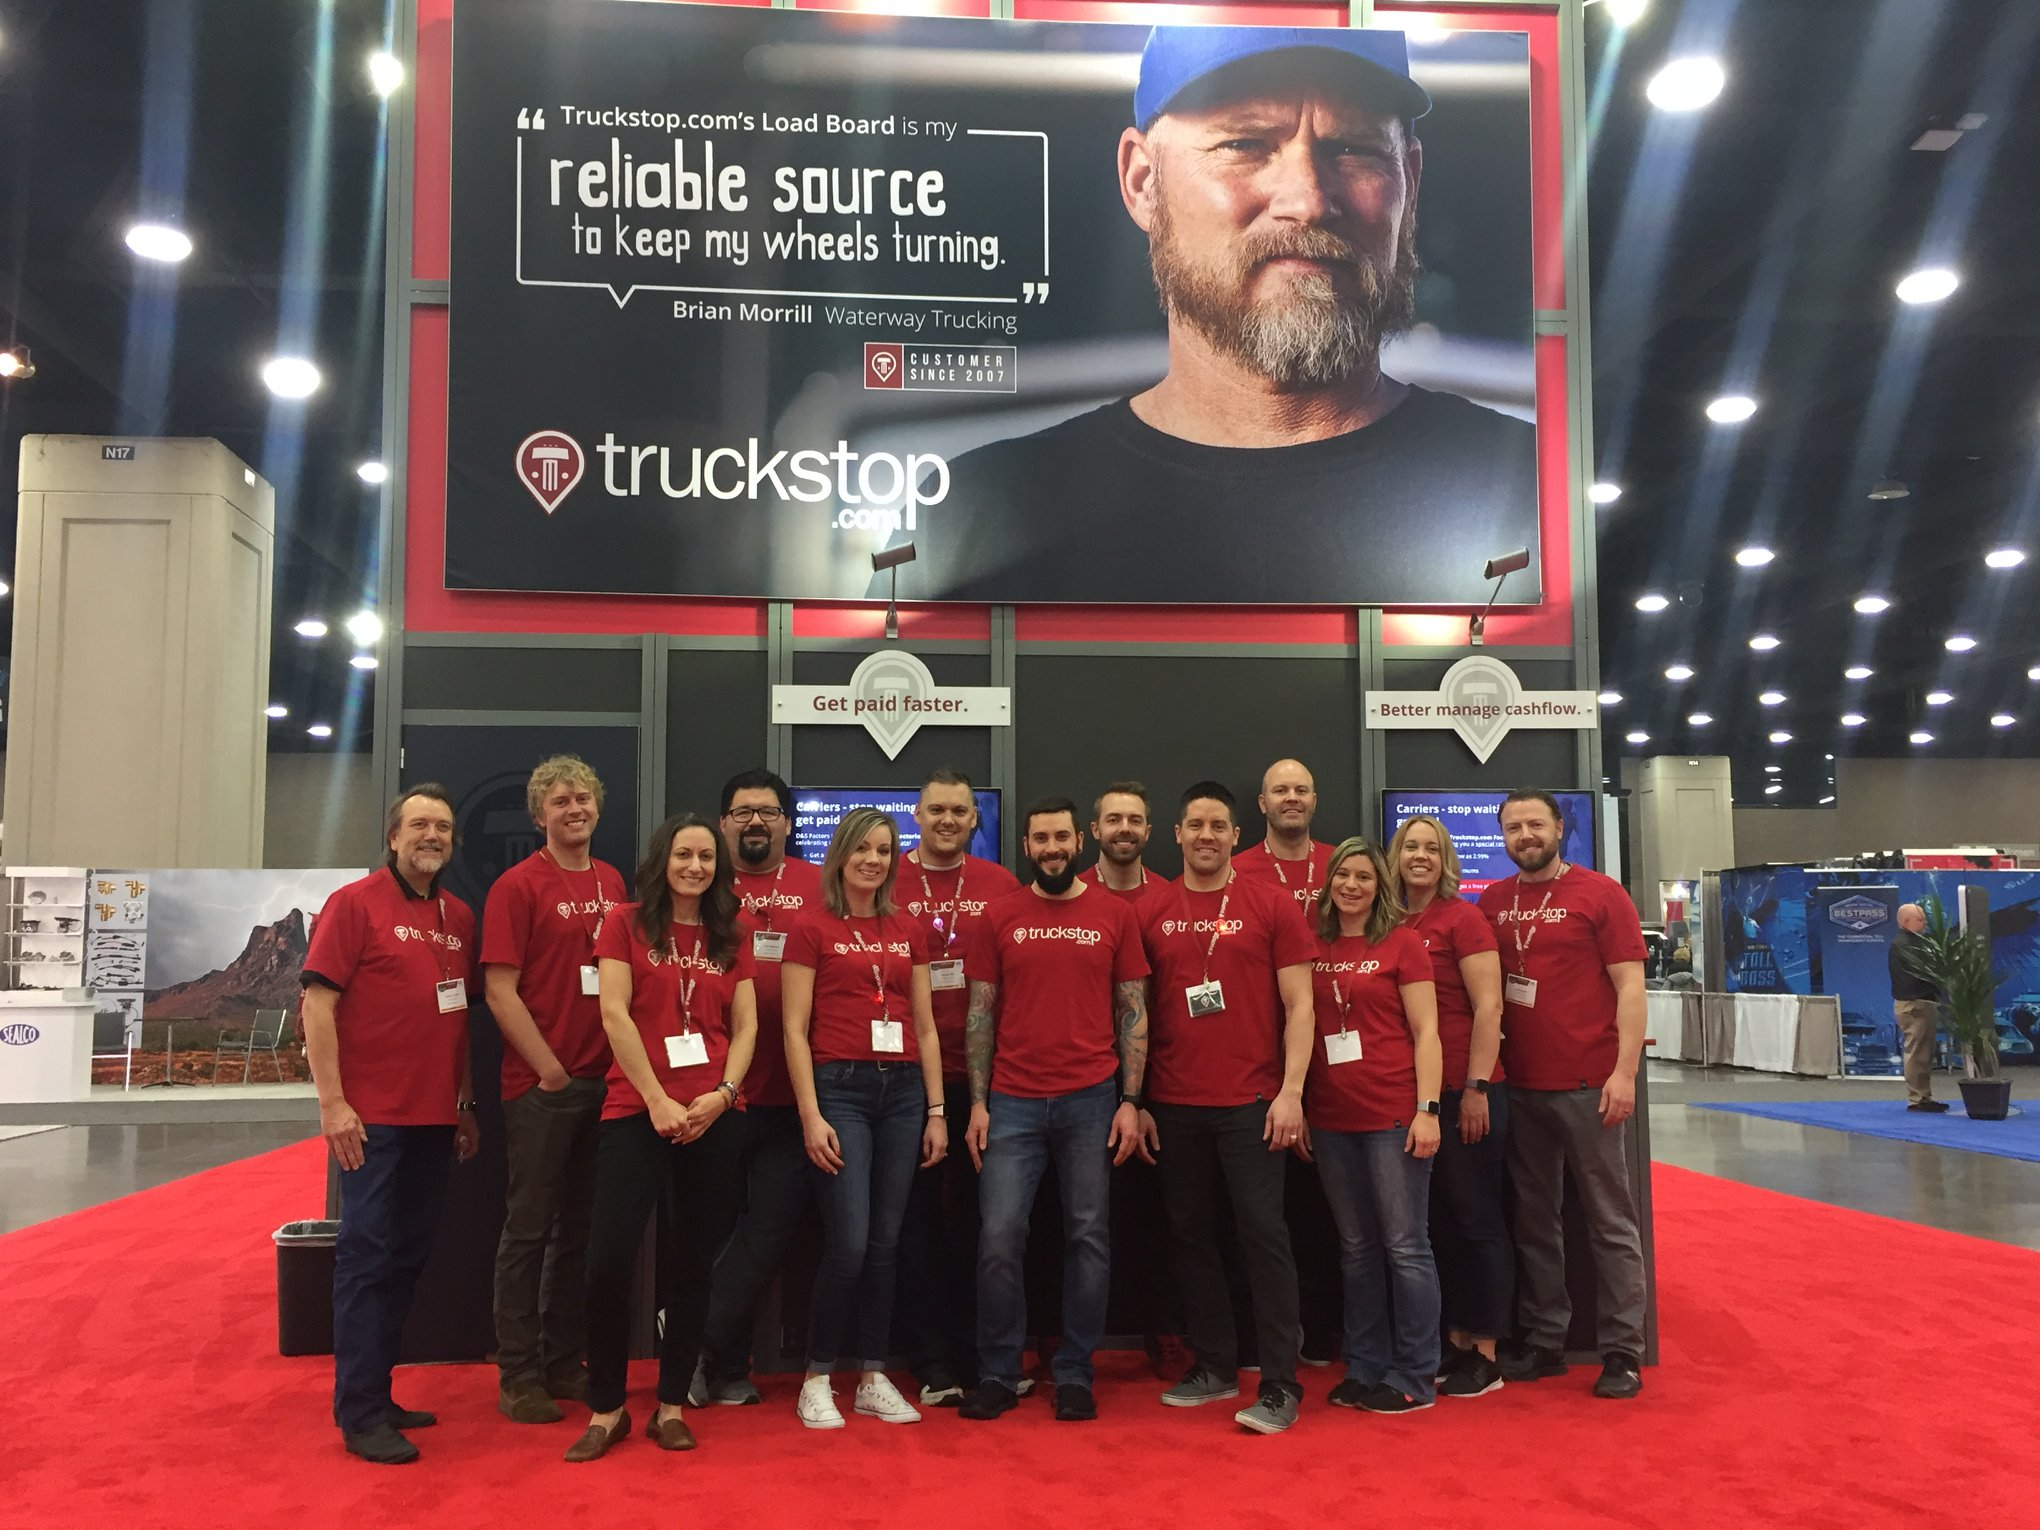 Truckstop.com team at a trade show with iCapture